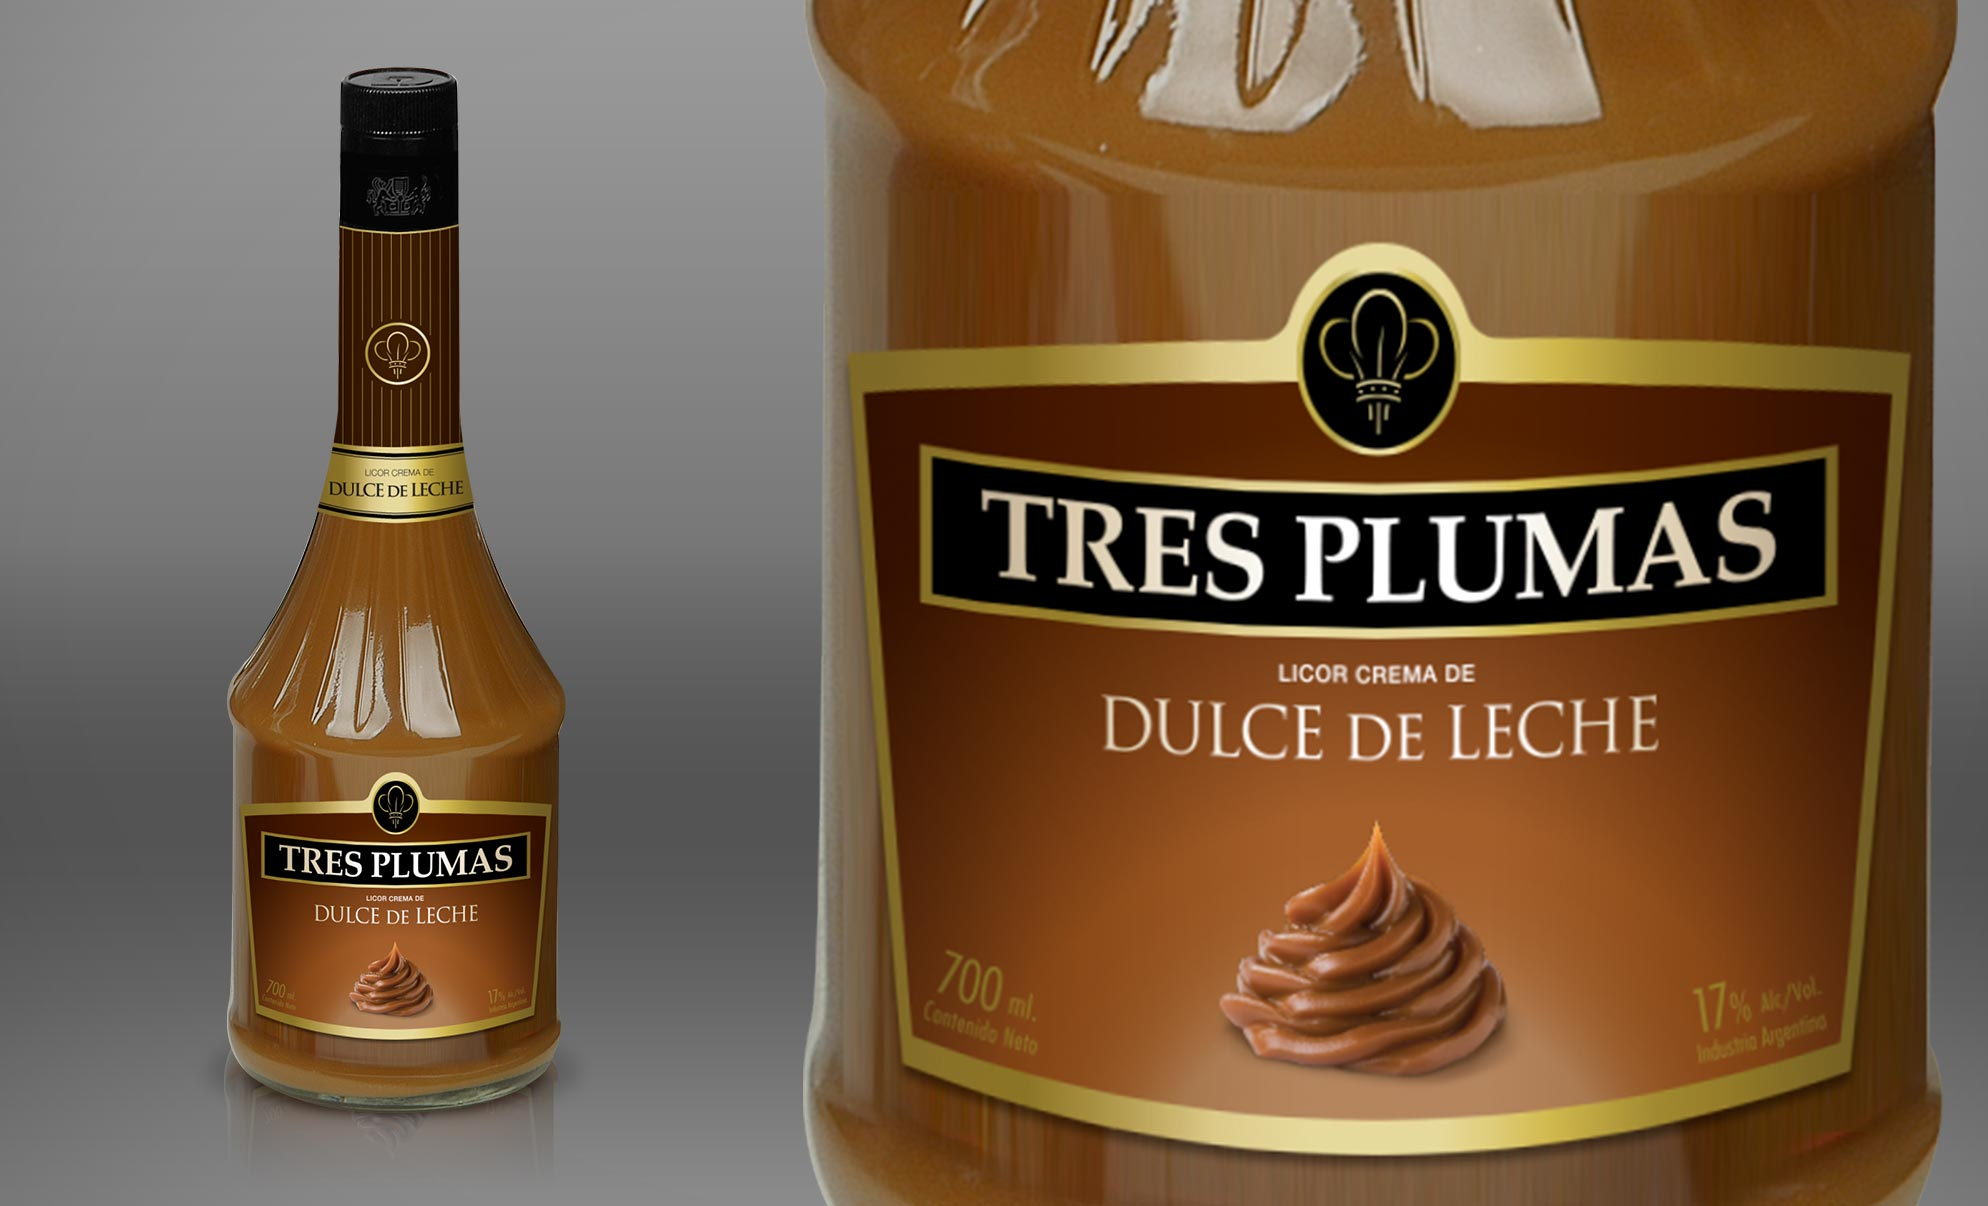 Dellepiane Tres Plumas Liquors Packaging Bottle Dulce de Leche